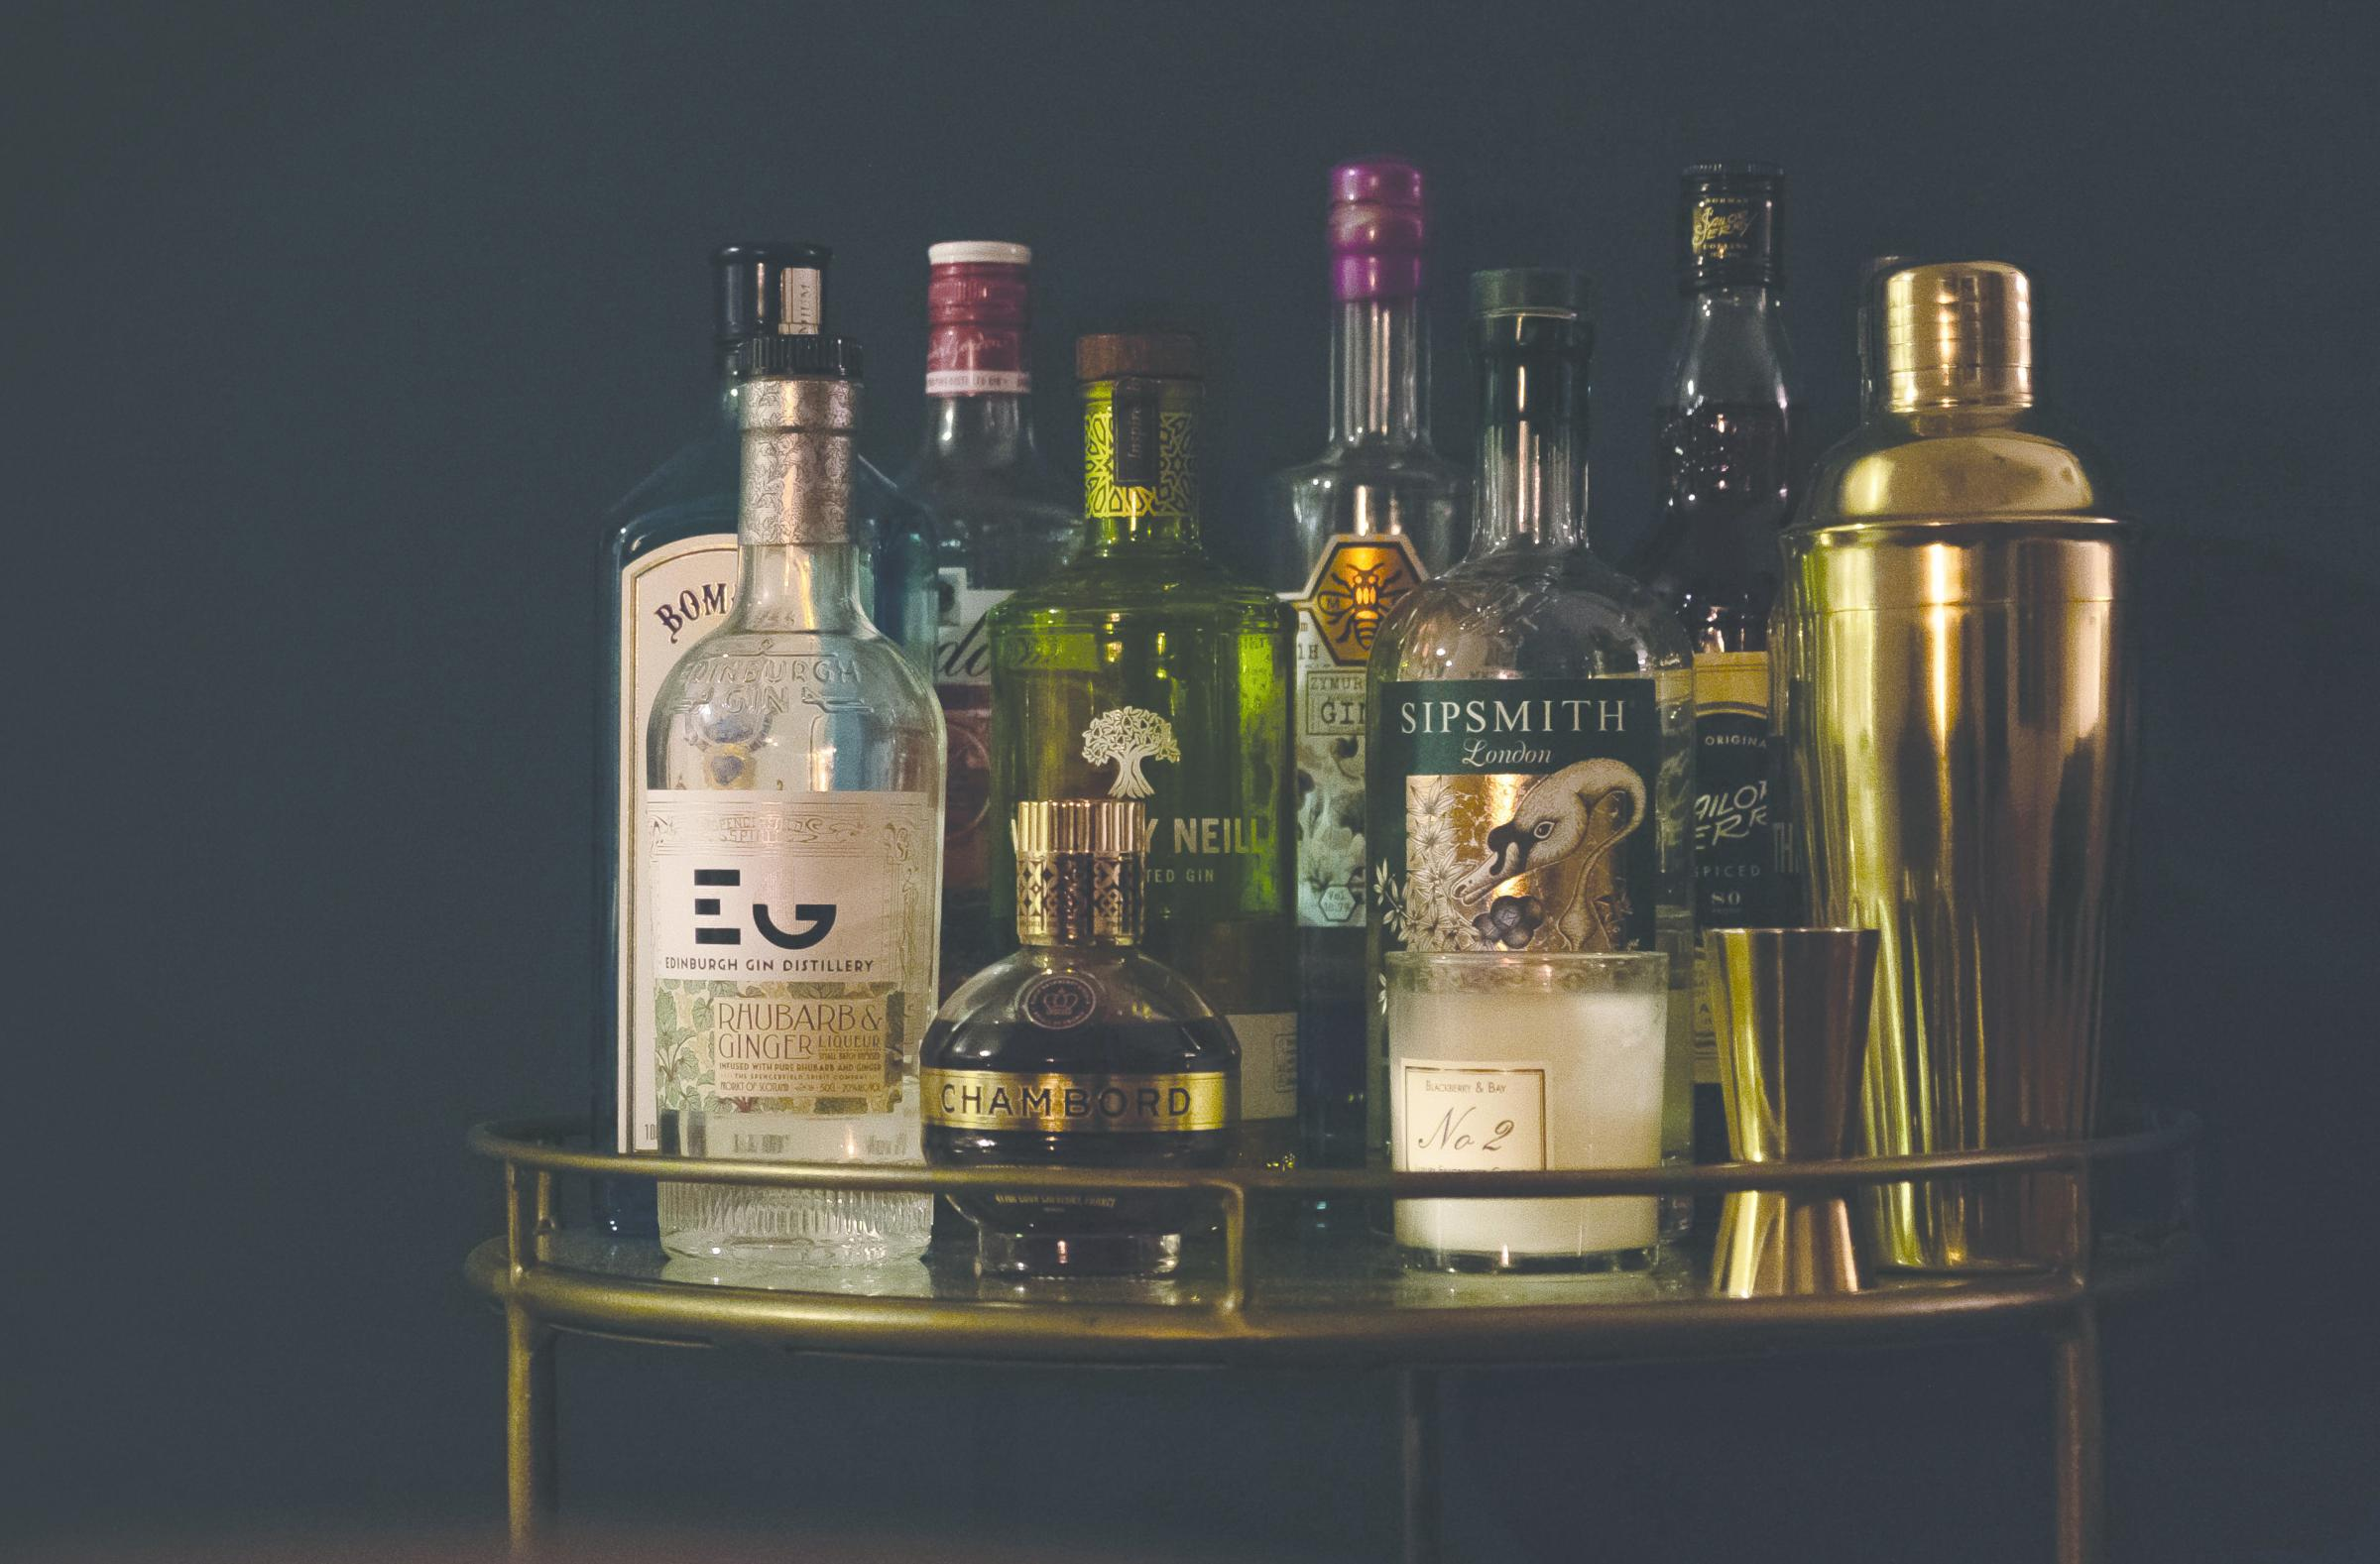 Scots councils under fire for booze-ups paid for by common good fund